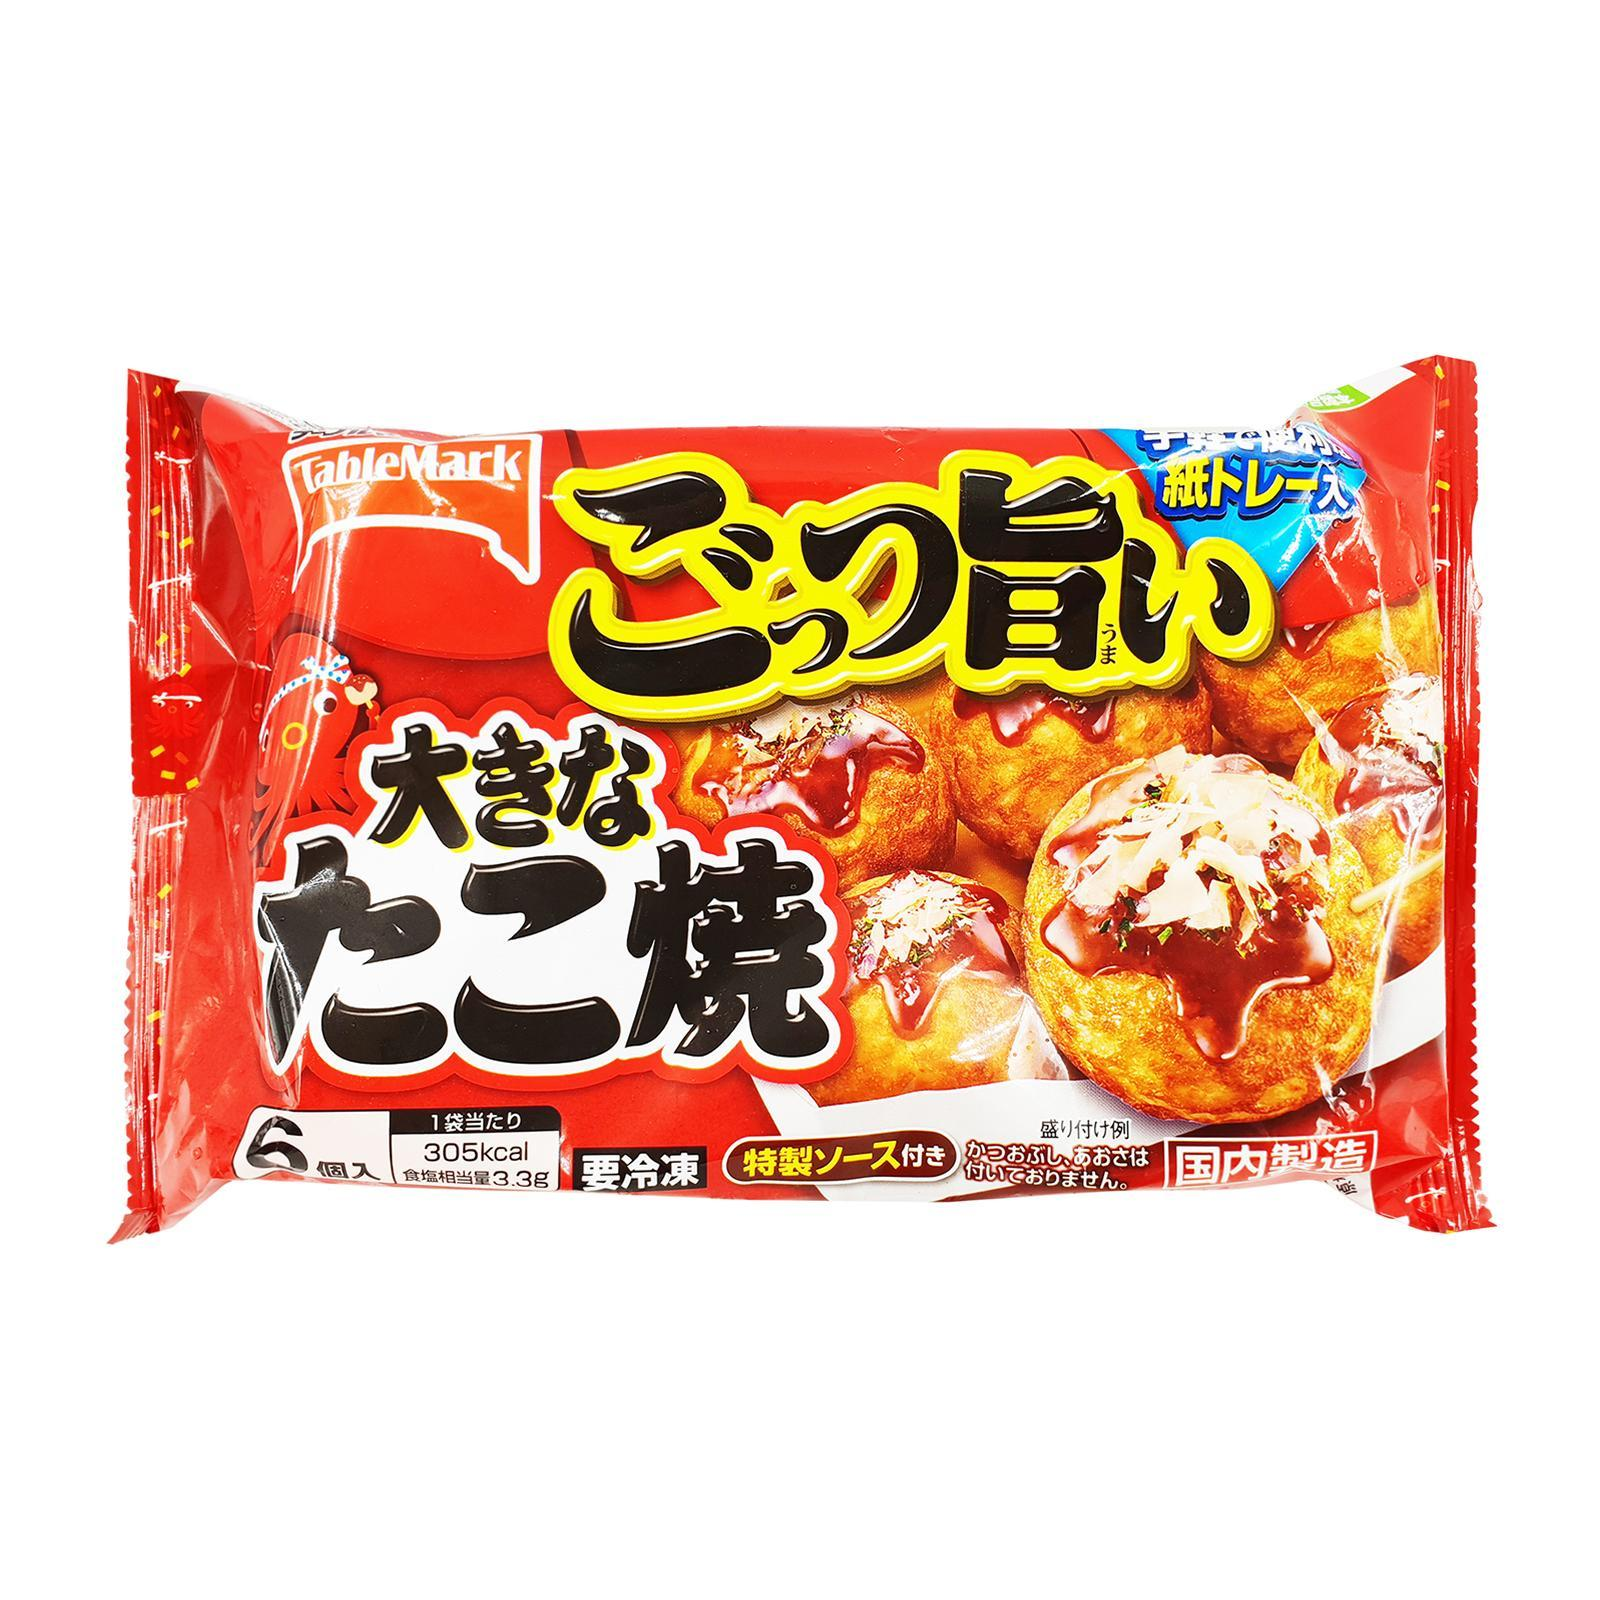 Tablemark Takoyaki Octopus Balls 6p - Frozen By Redmart.